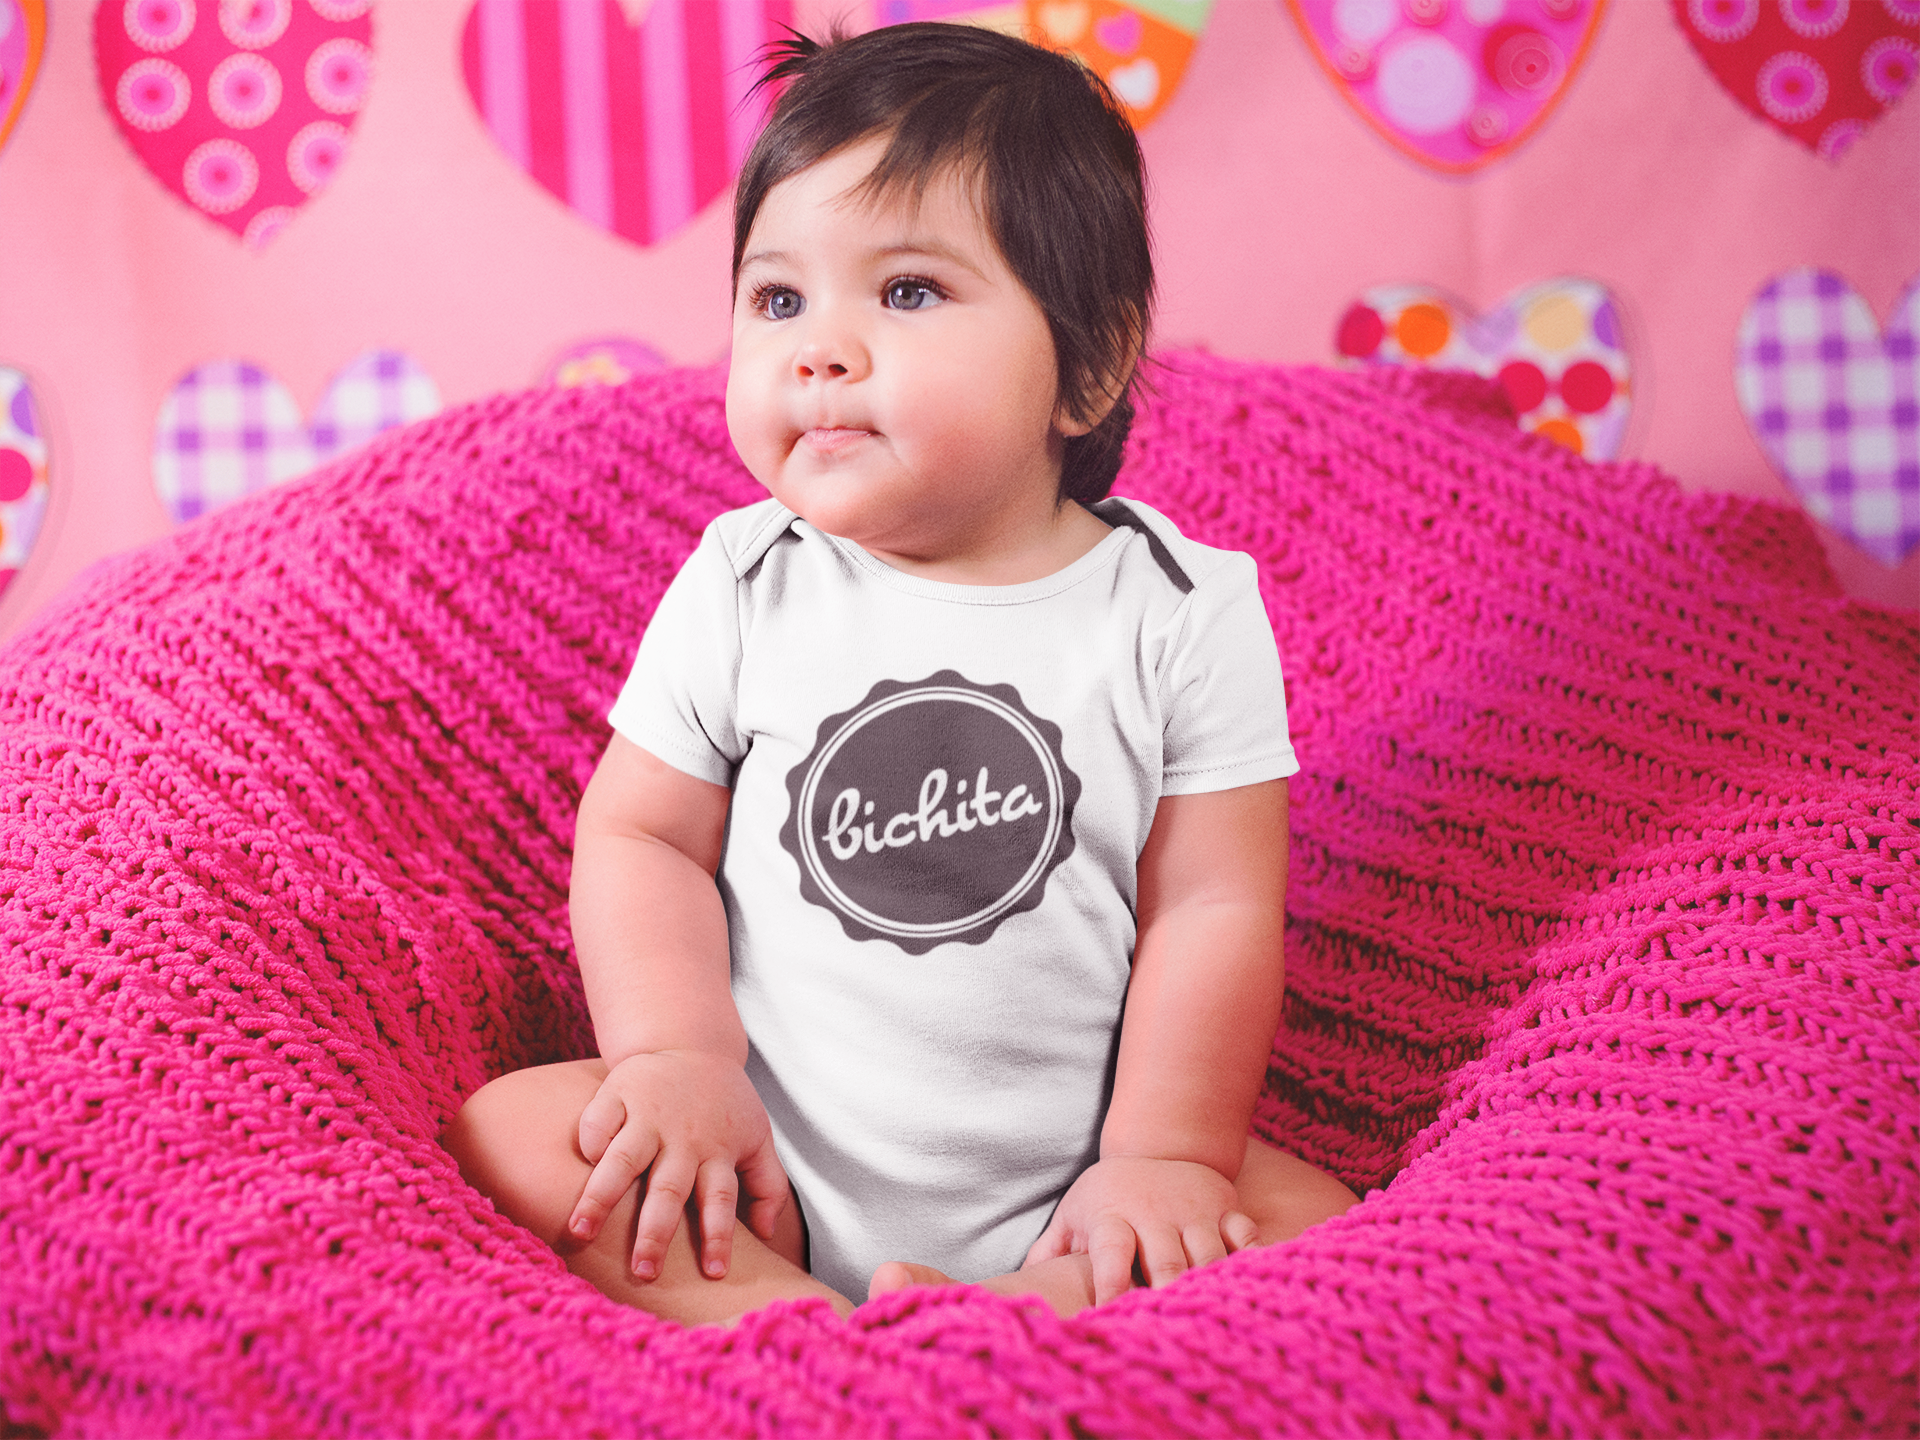 Bichita T-Shirt, Baby one piece, El Salvador Clothing, baby-girl shirt, Sivar clothes, - SIVAR ESTILO